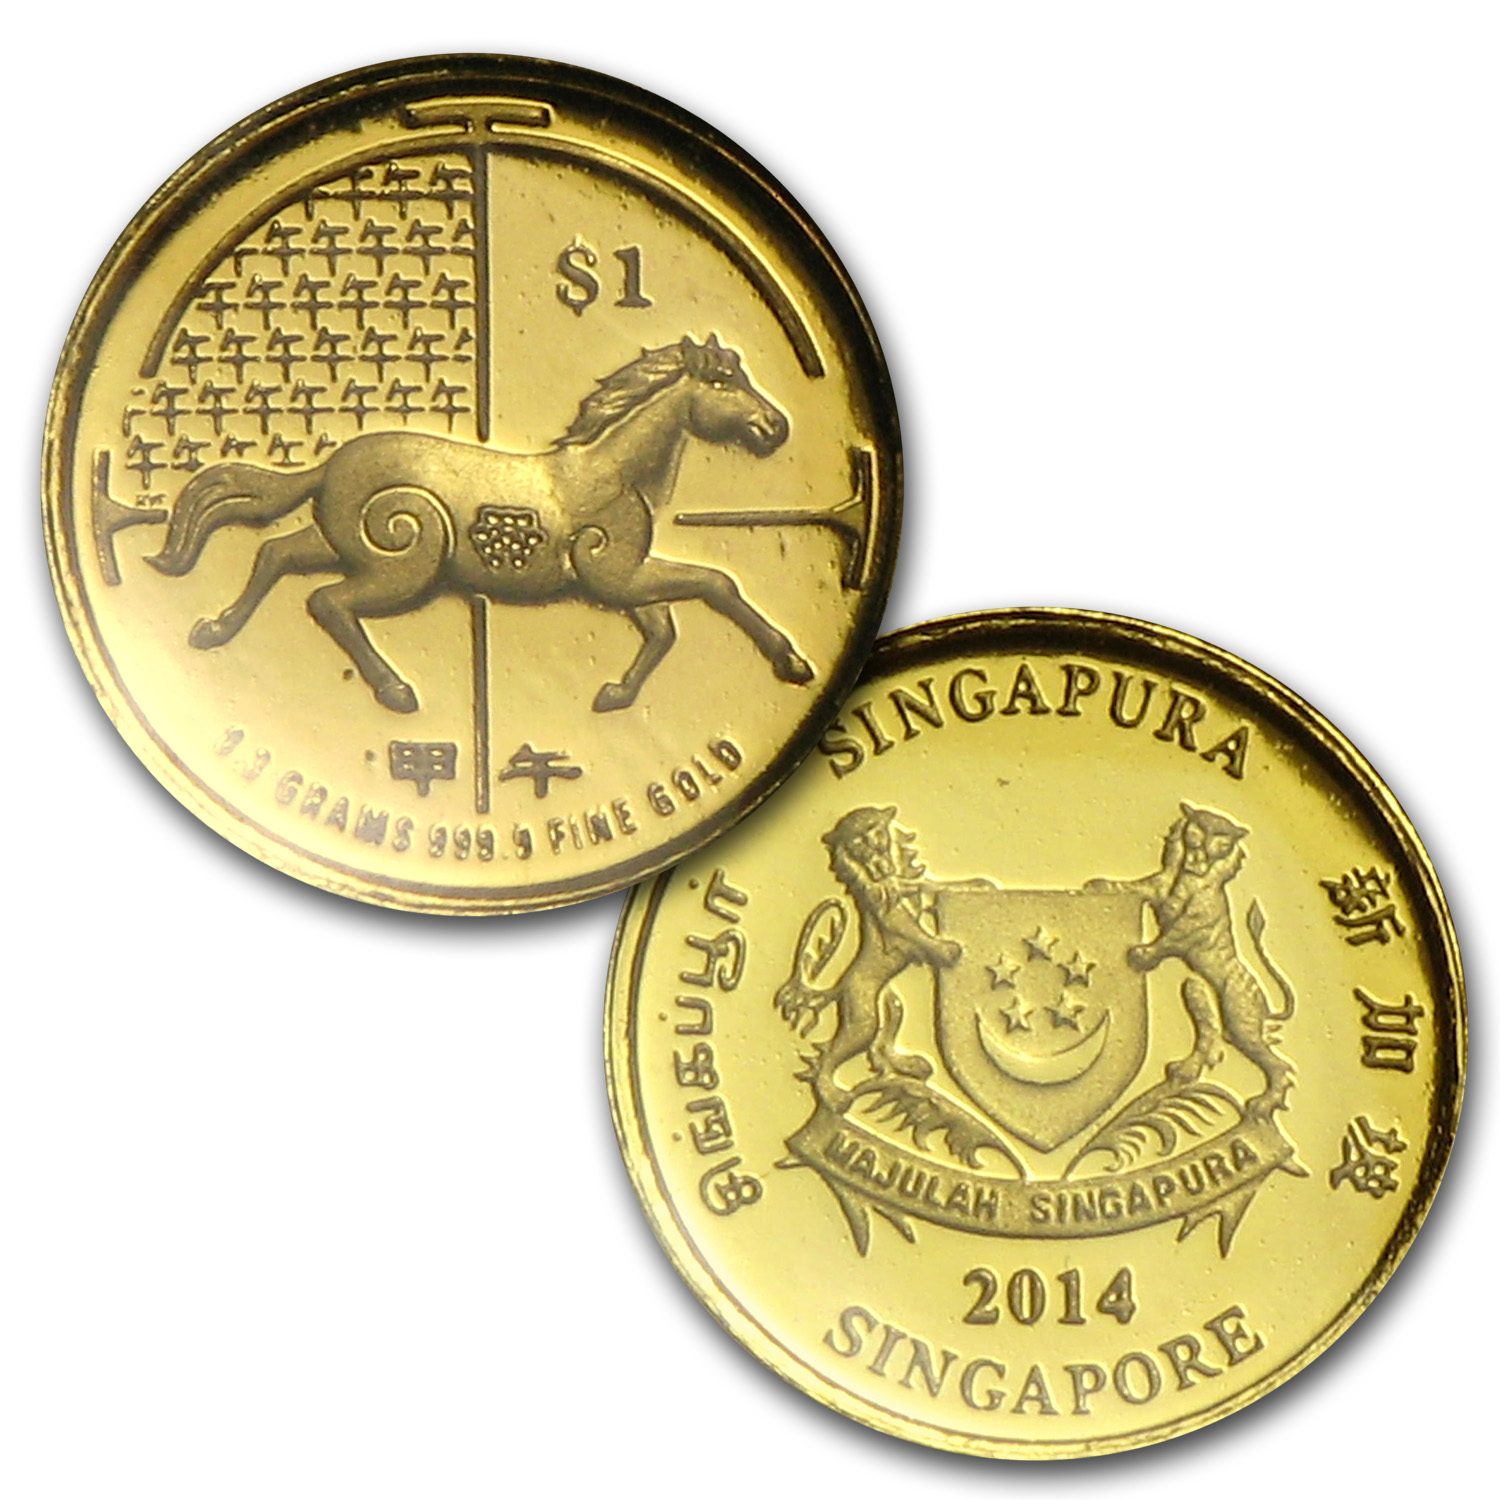 Singapore 2014 Year of the Horse 0.3 gm Gold Proof Coin